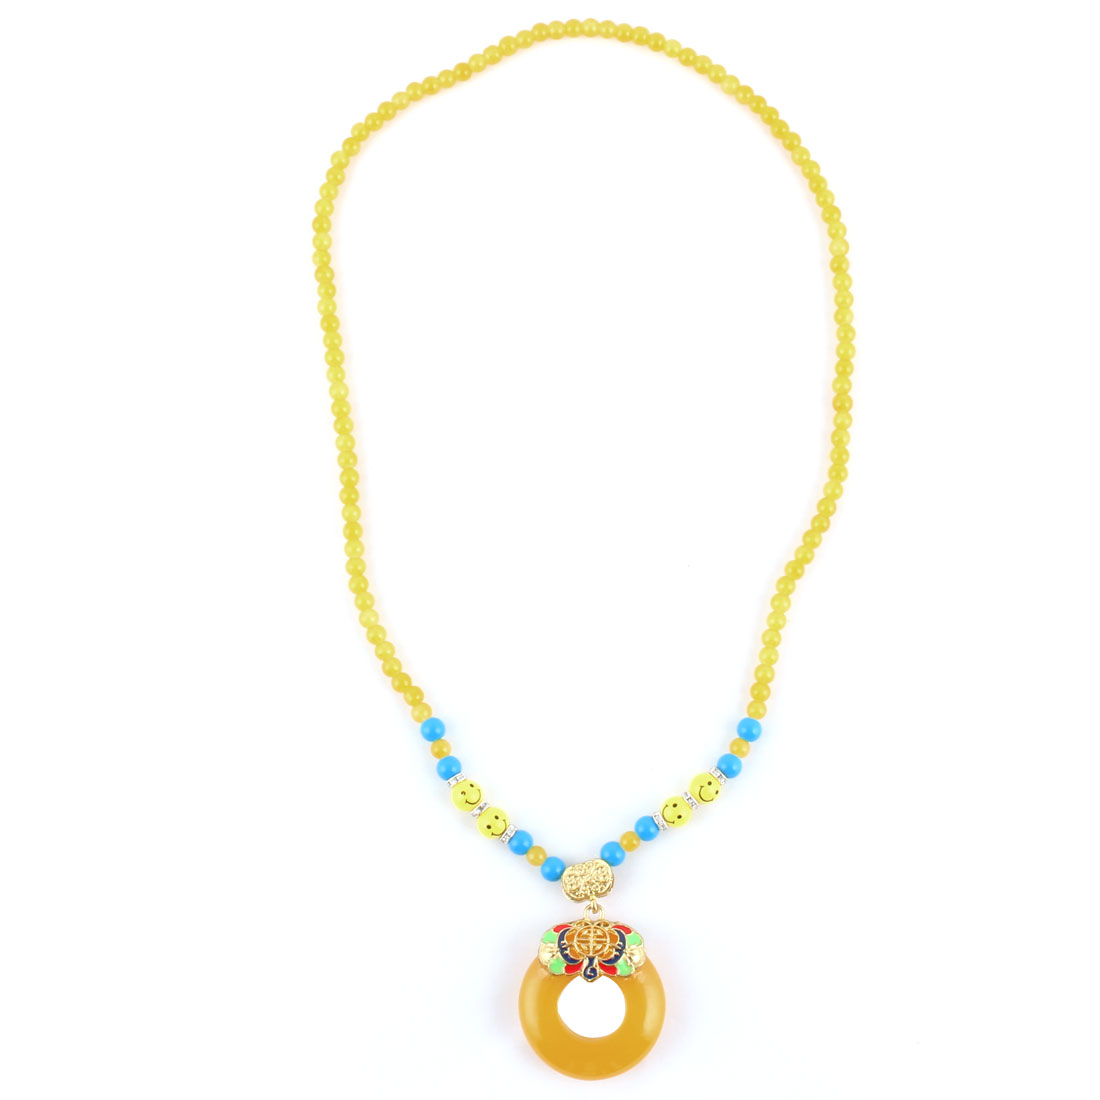 Home Ladies Plastic Bead Round Shaped Pendant Chinese Style Necklet Necklace